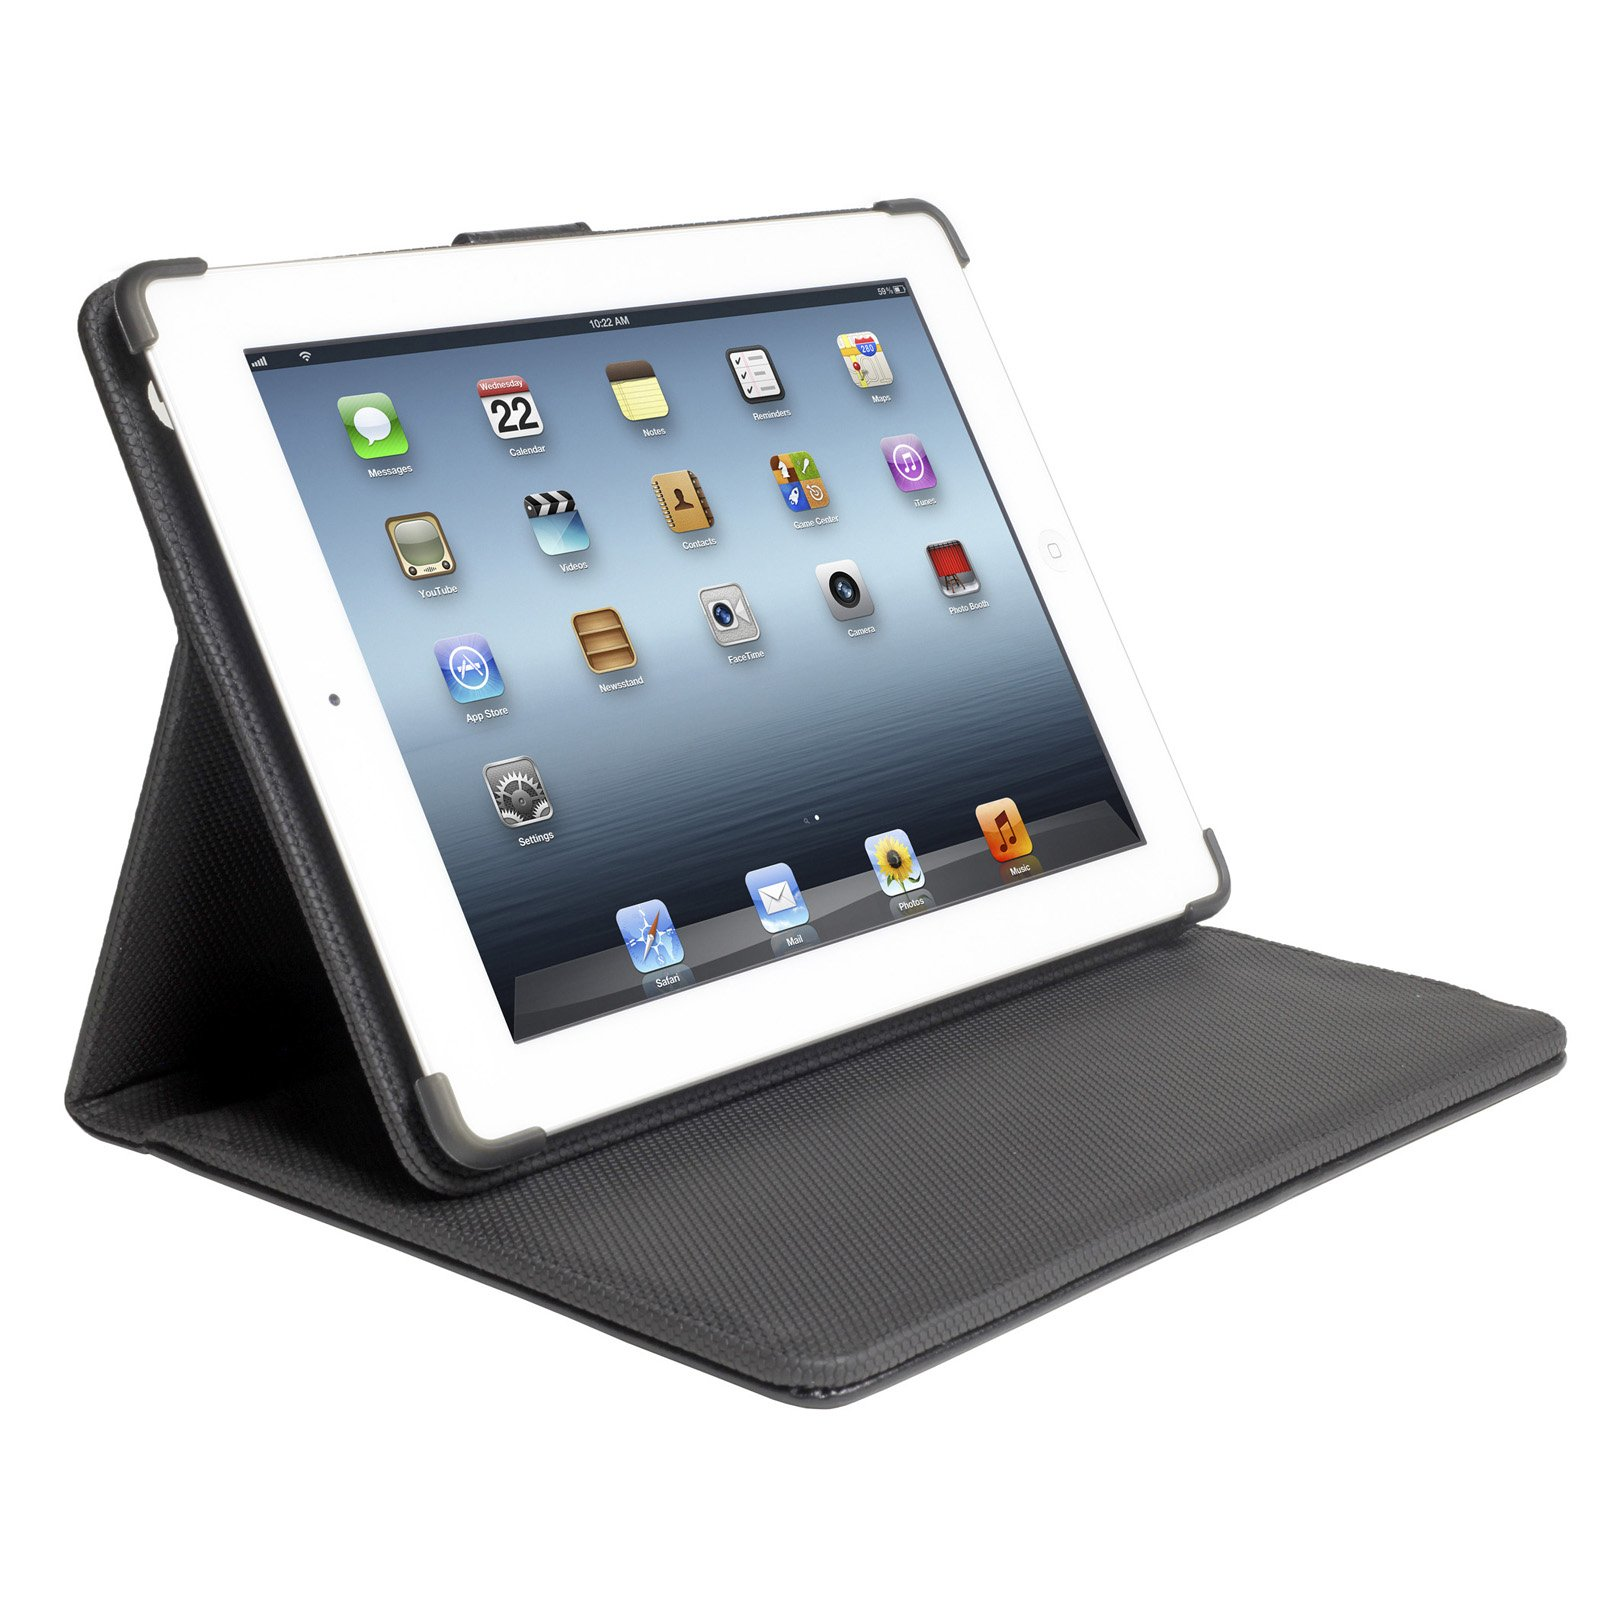 PCT Brands Props 12,000mAh Power Folio Case for iPad 2 by PCT Brands (Image #4)